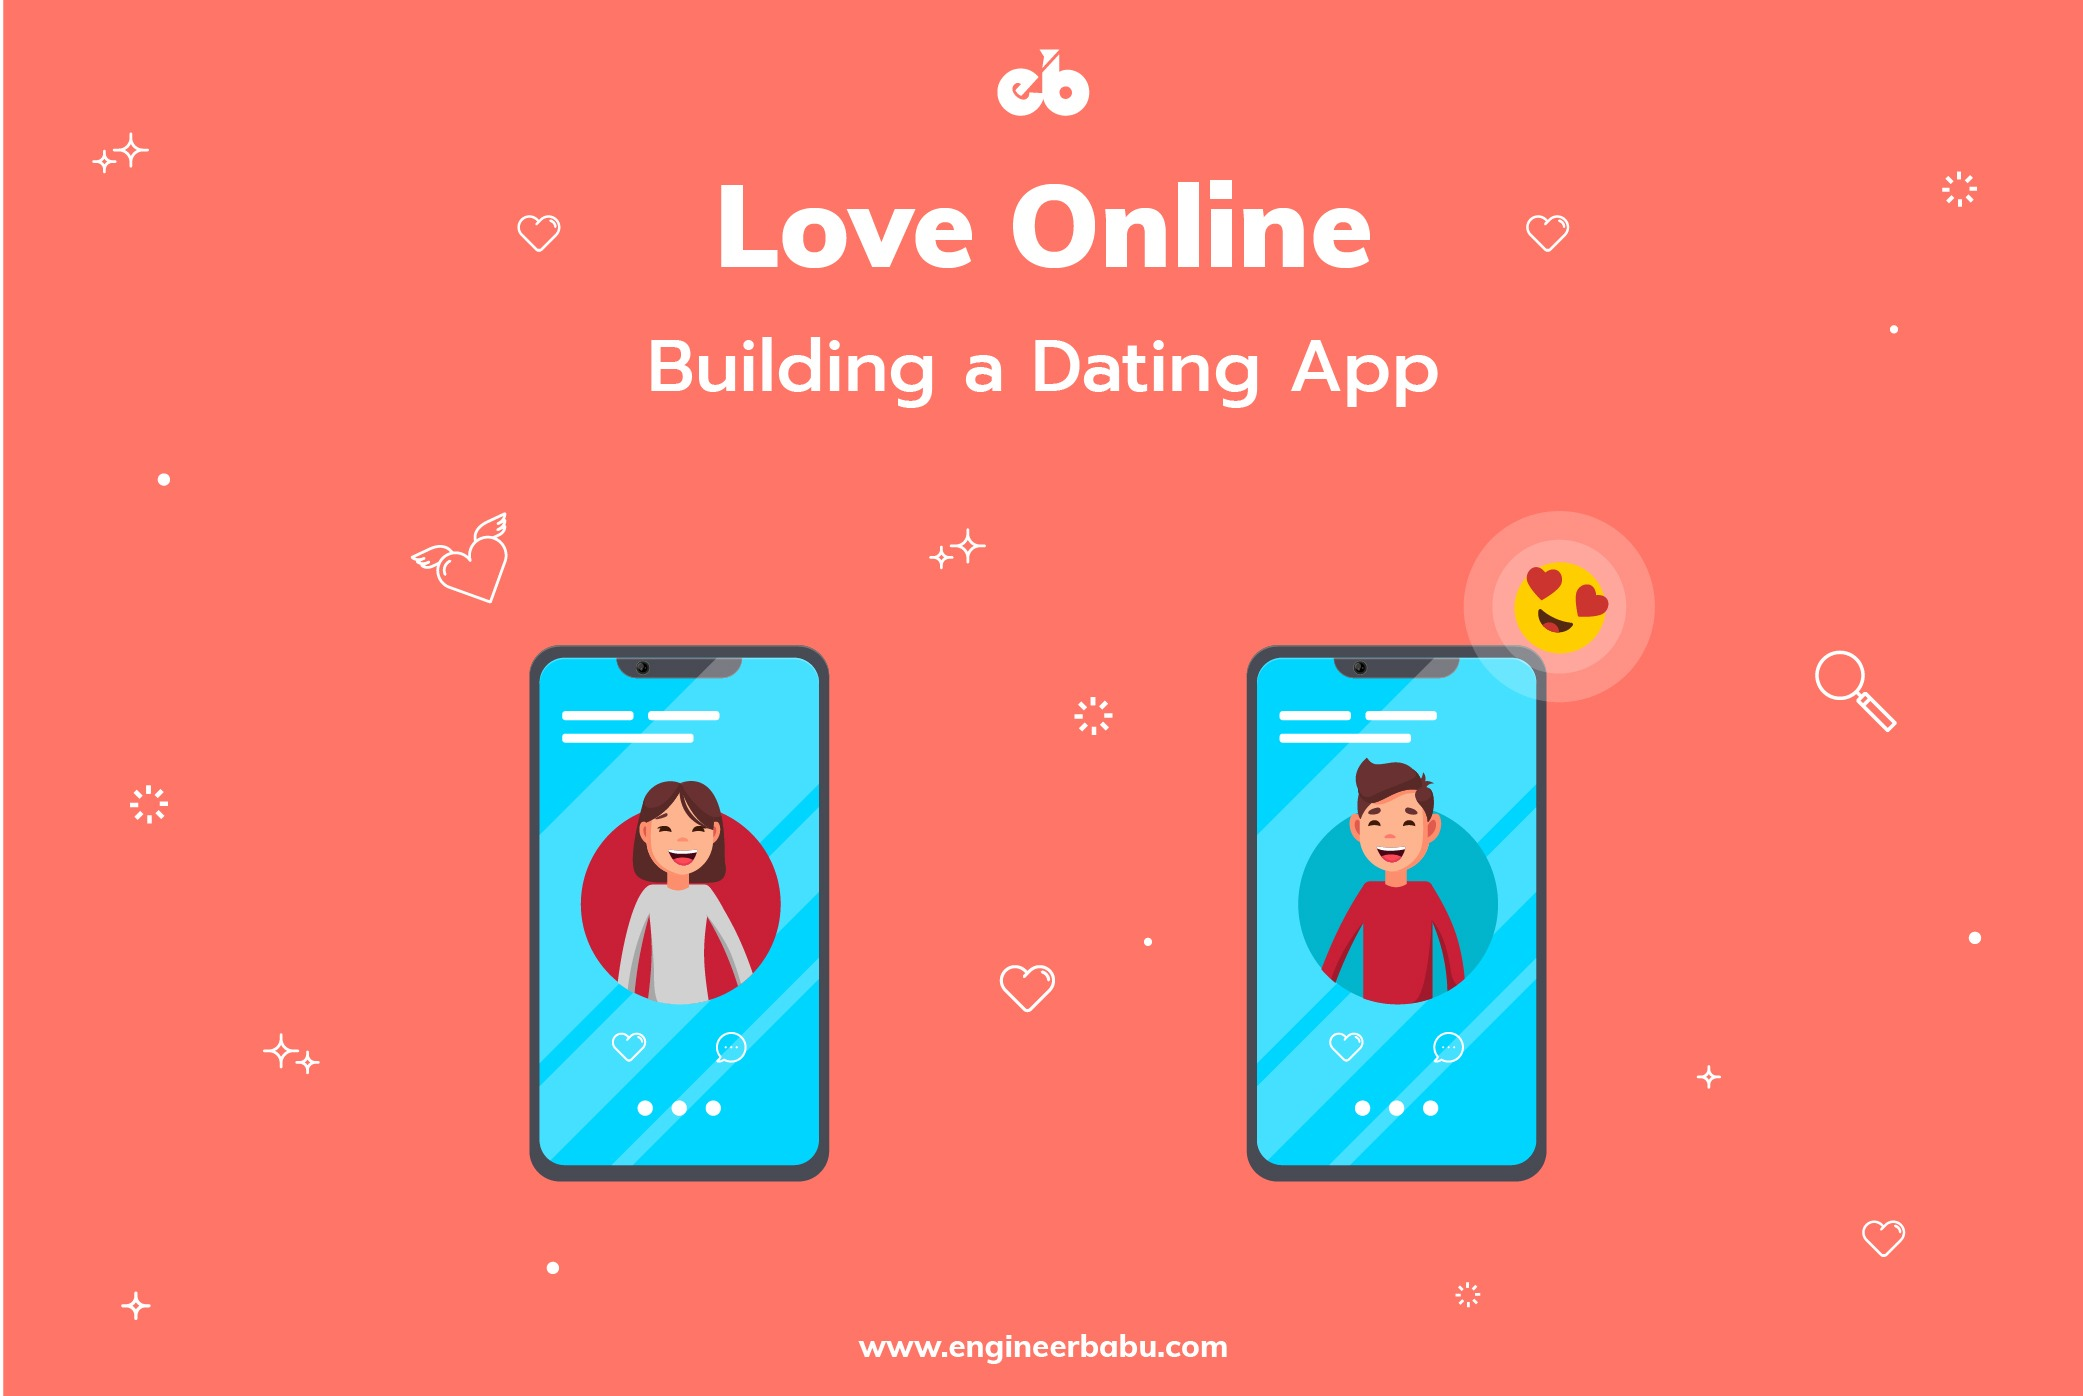 Free dating app for 50+